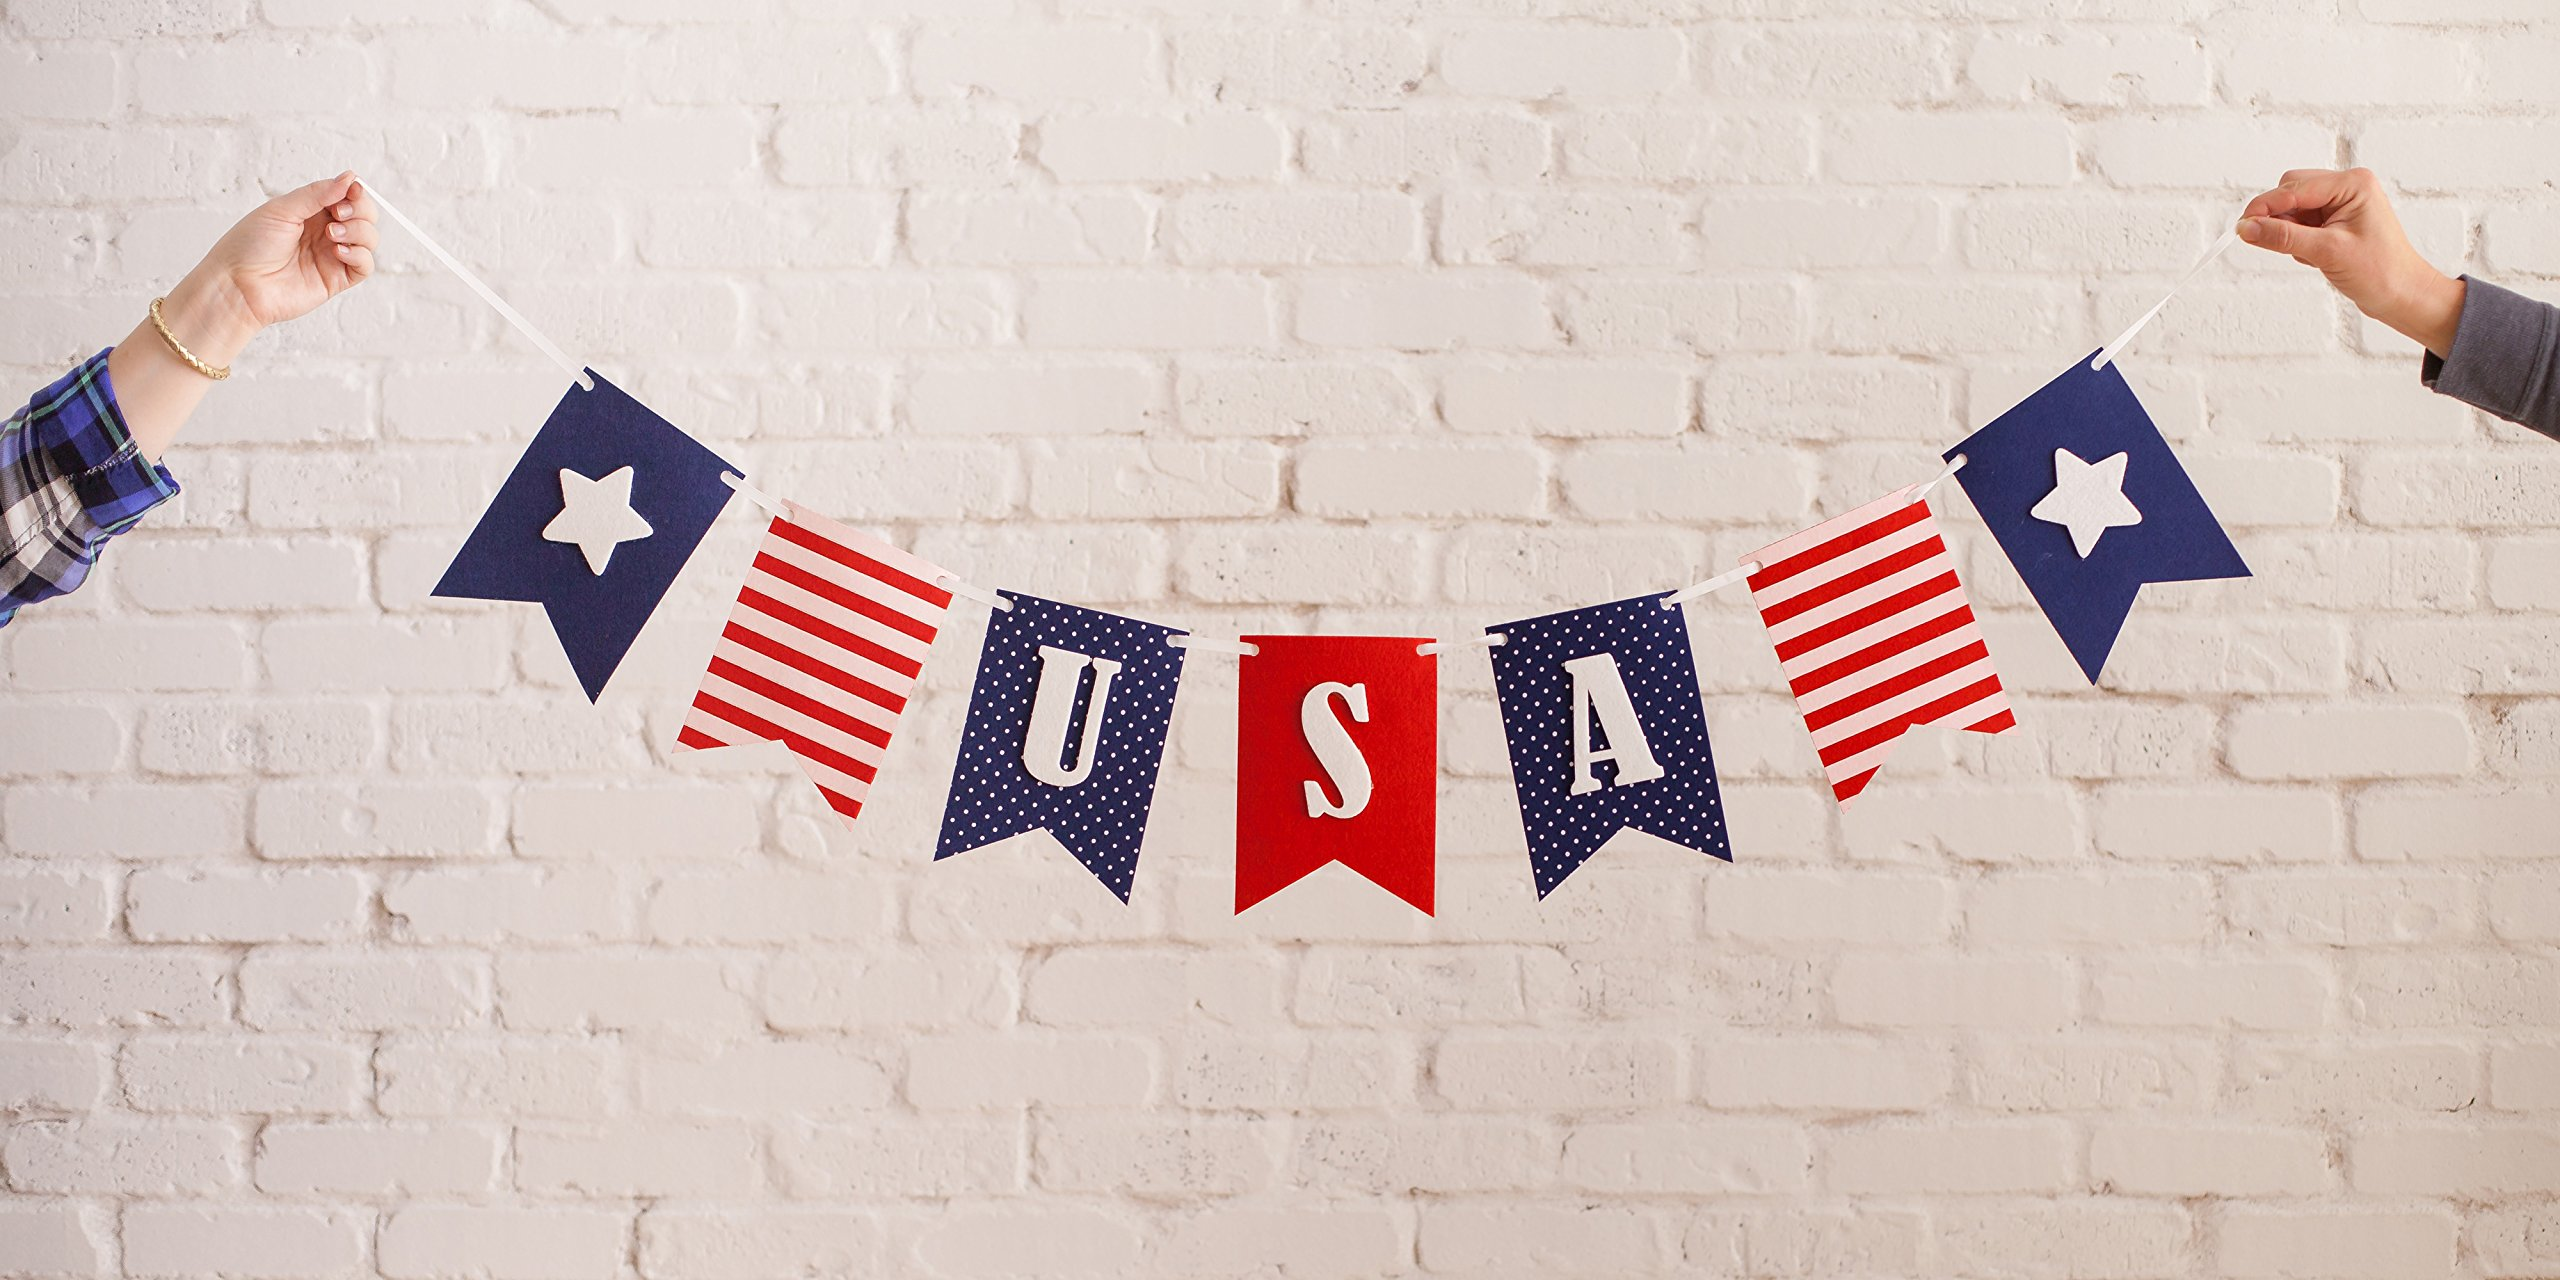 USA Banner Bunting Laser Cut Felt 40 inches wide - Patriotic Americana Red, White, & Blue America! by Decomod (Image #2)